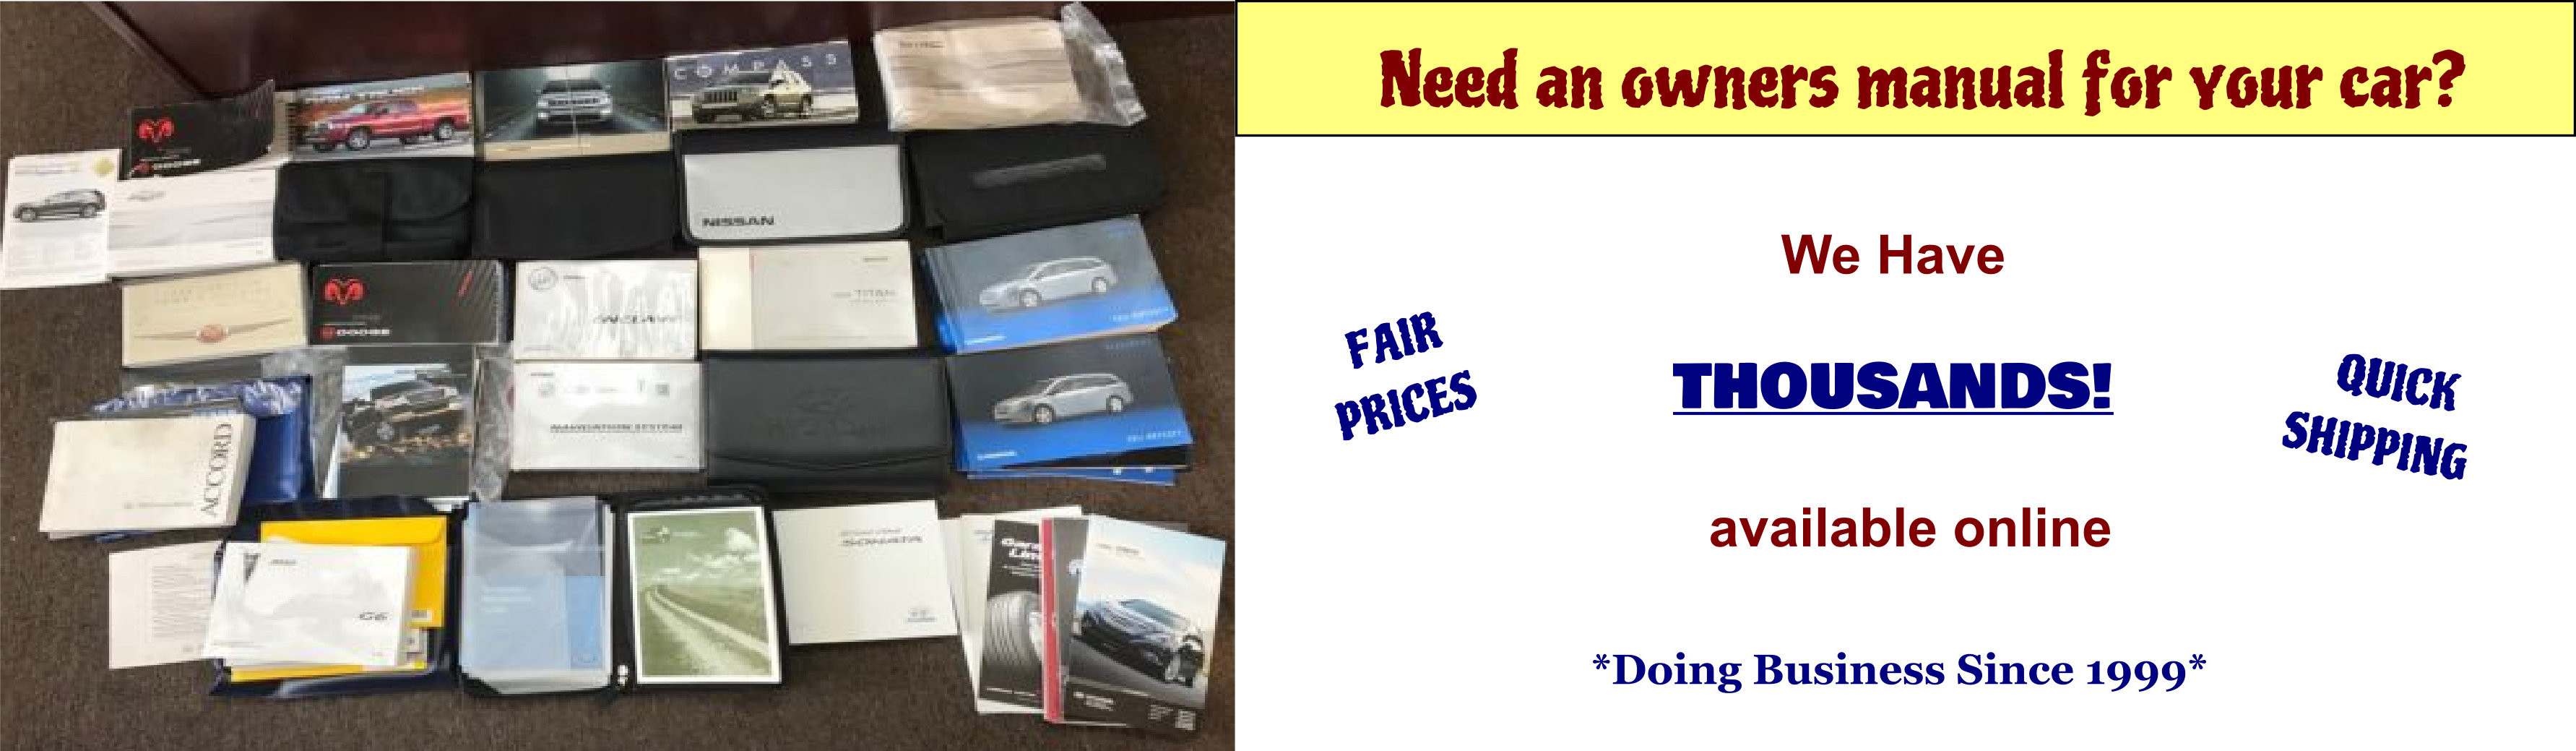 Cooters Auto Manuals Infiniti G20 Repair Manual Welcome Guest Would You Like To Log Yourself In Or Prefer Create An Account